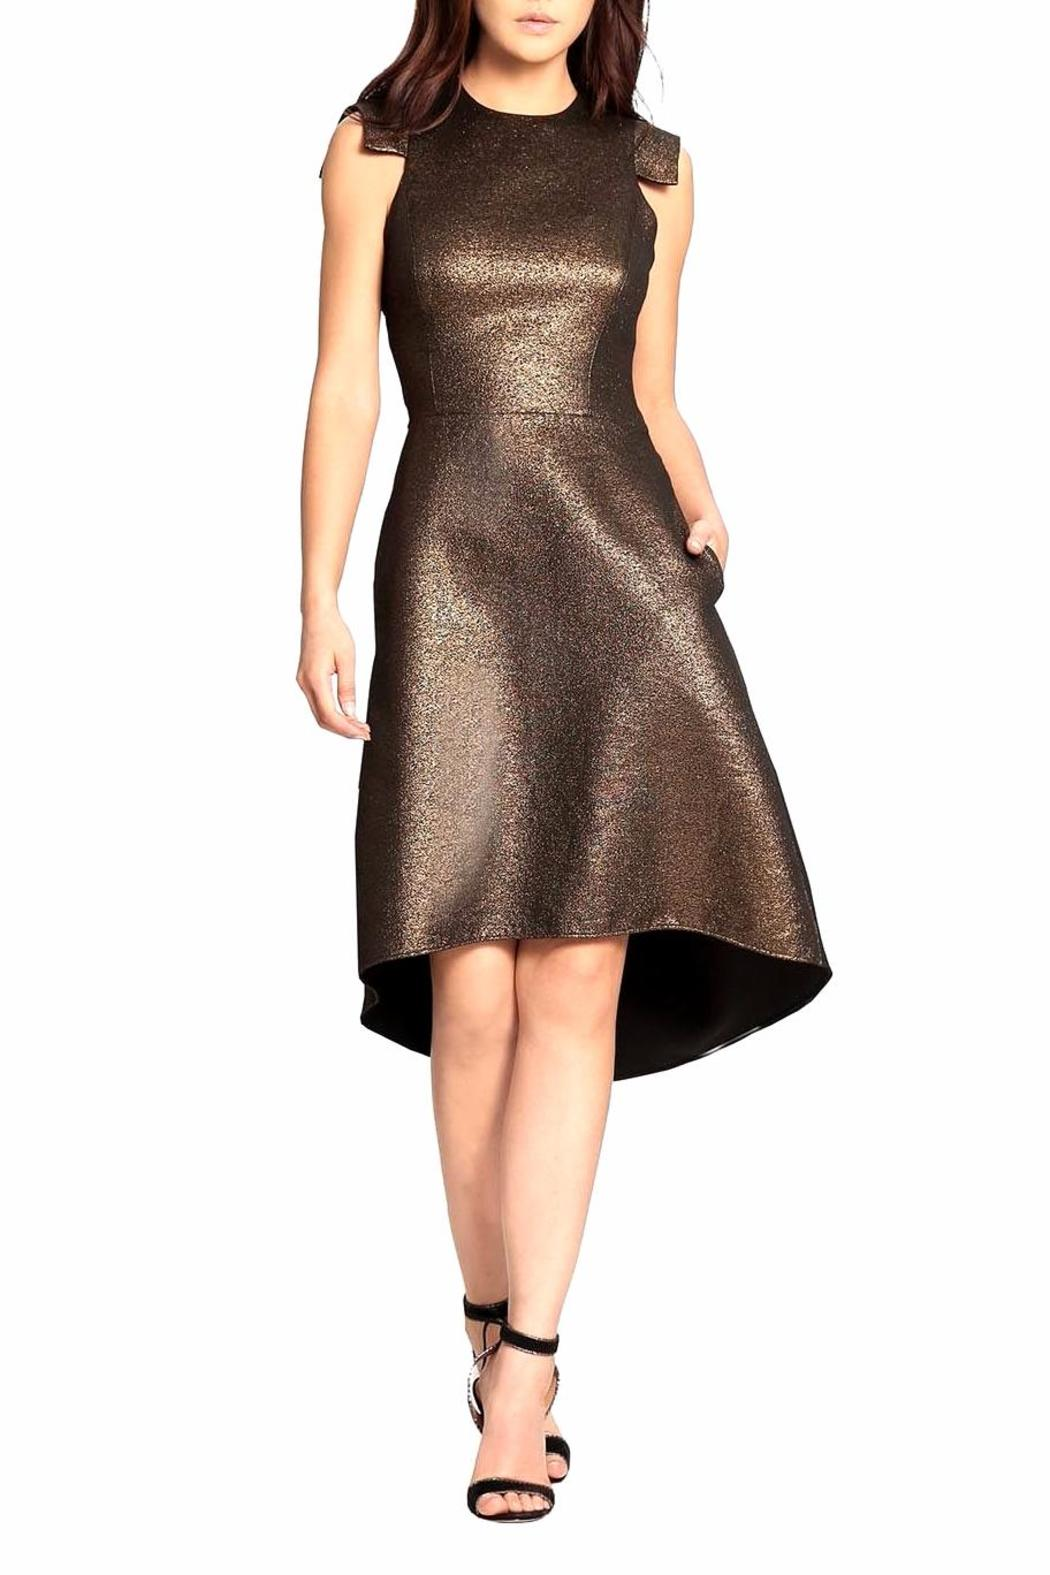 Halston Heritage Metallic Cocktail Dress from New Jersey by District ...